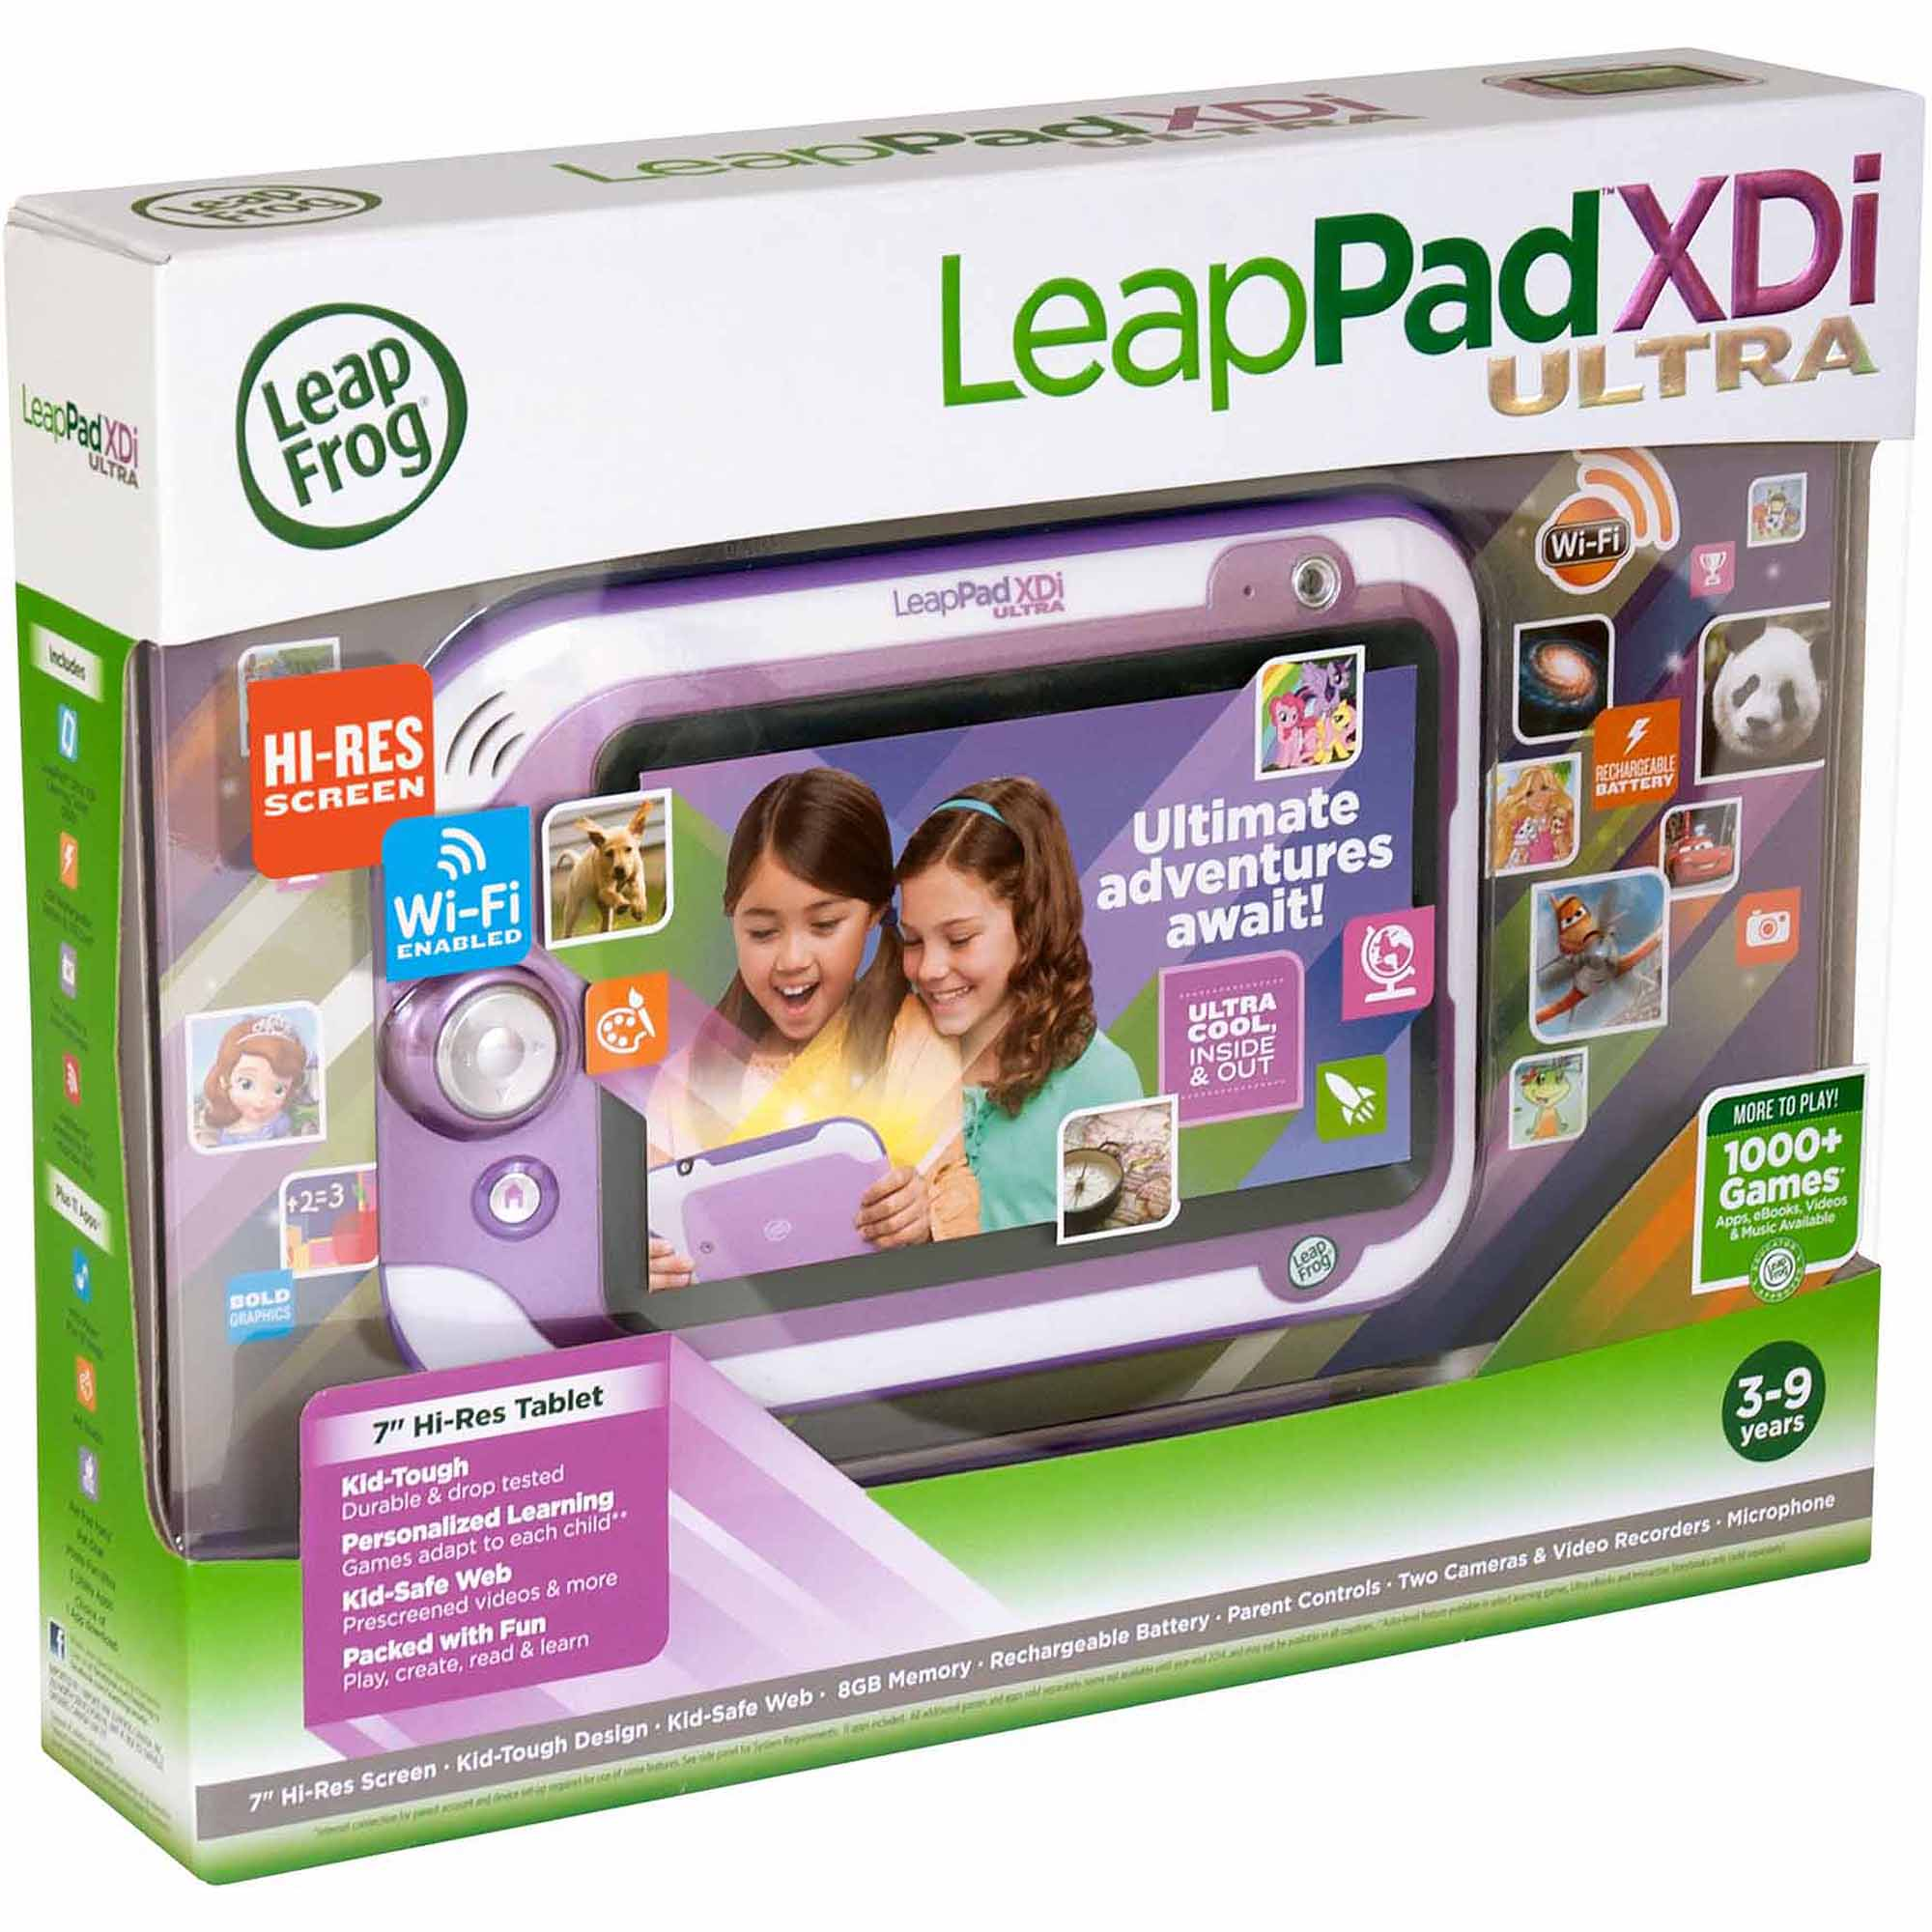 Marvelous Leapfrog Leappad Ultra Kids Tablets For Learning Green Download Free Architecture Designs Rallybritishbridgeorg